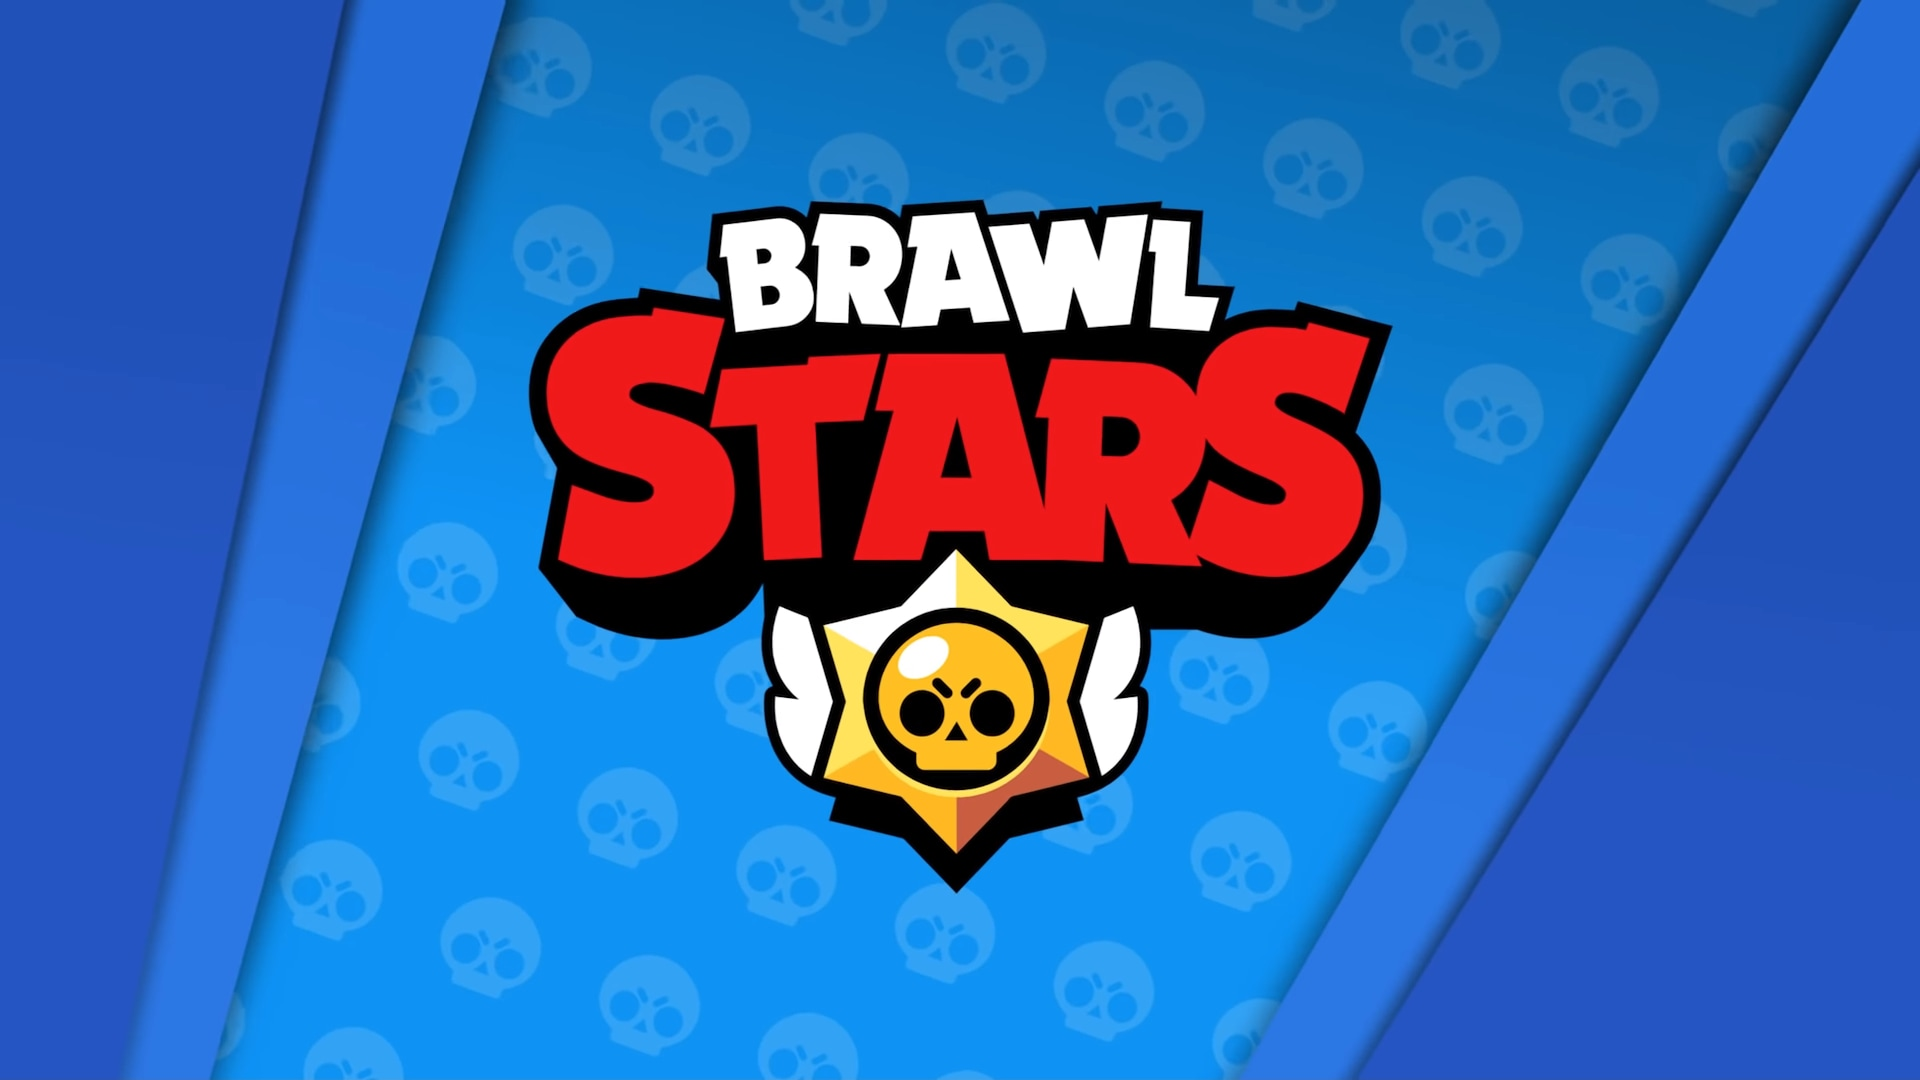 Disponibile Brawl Stars Dagli Autori Di Clash Royale La Vostra